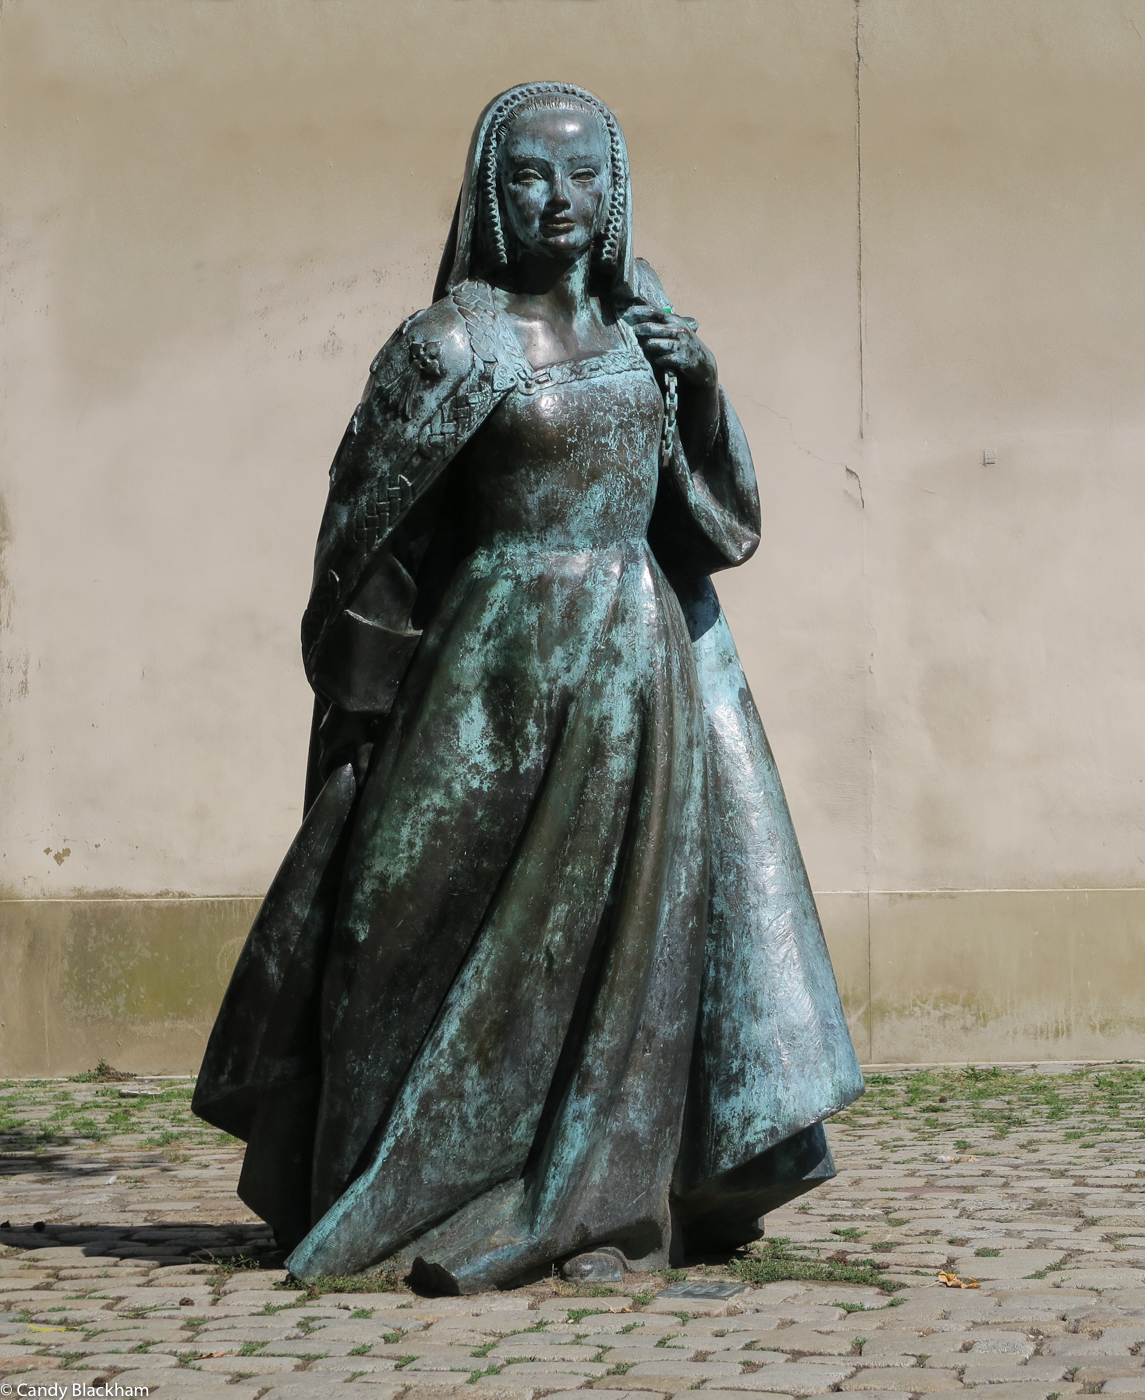 The Duchess Anne, outside the Ducal Palace, Nantes